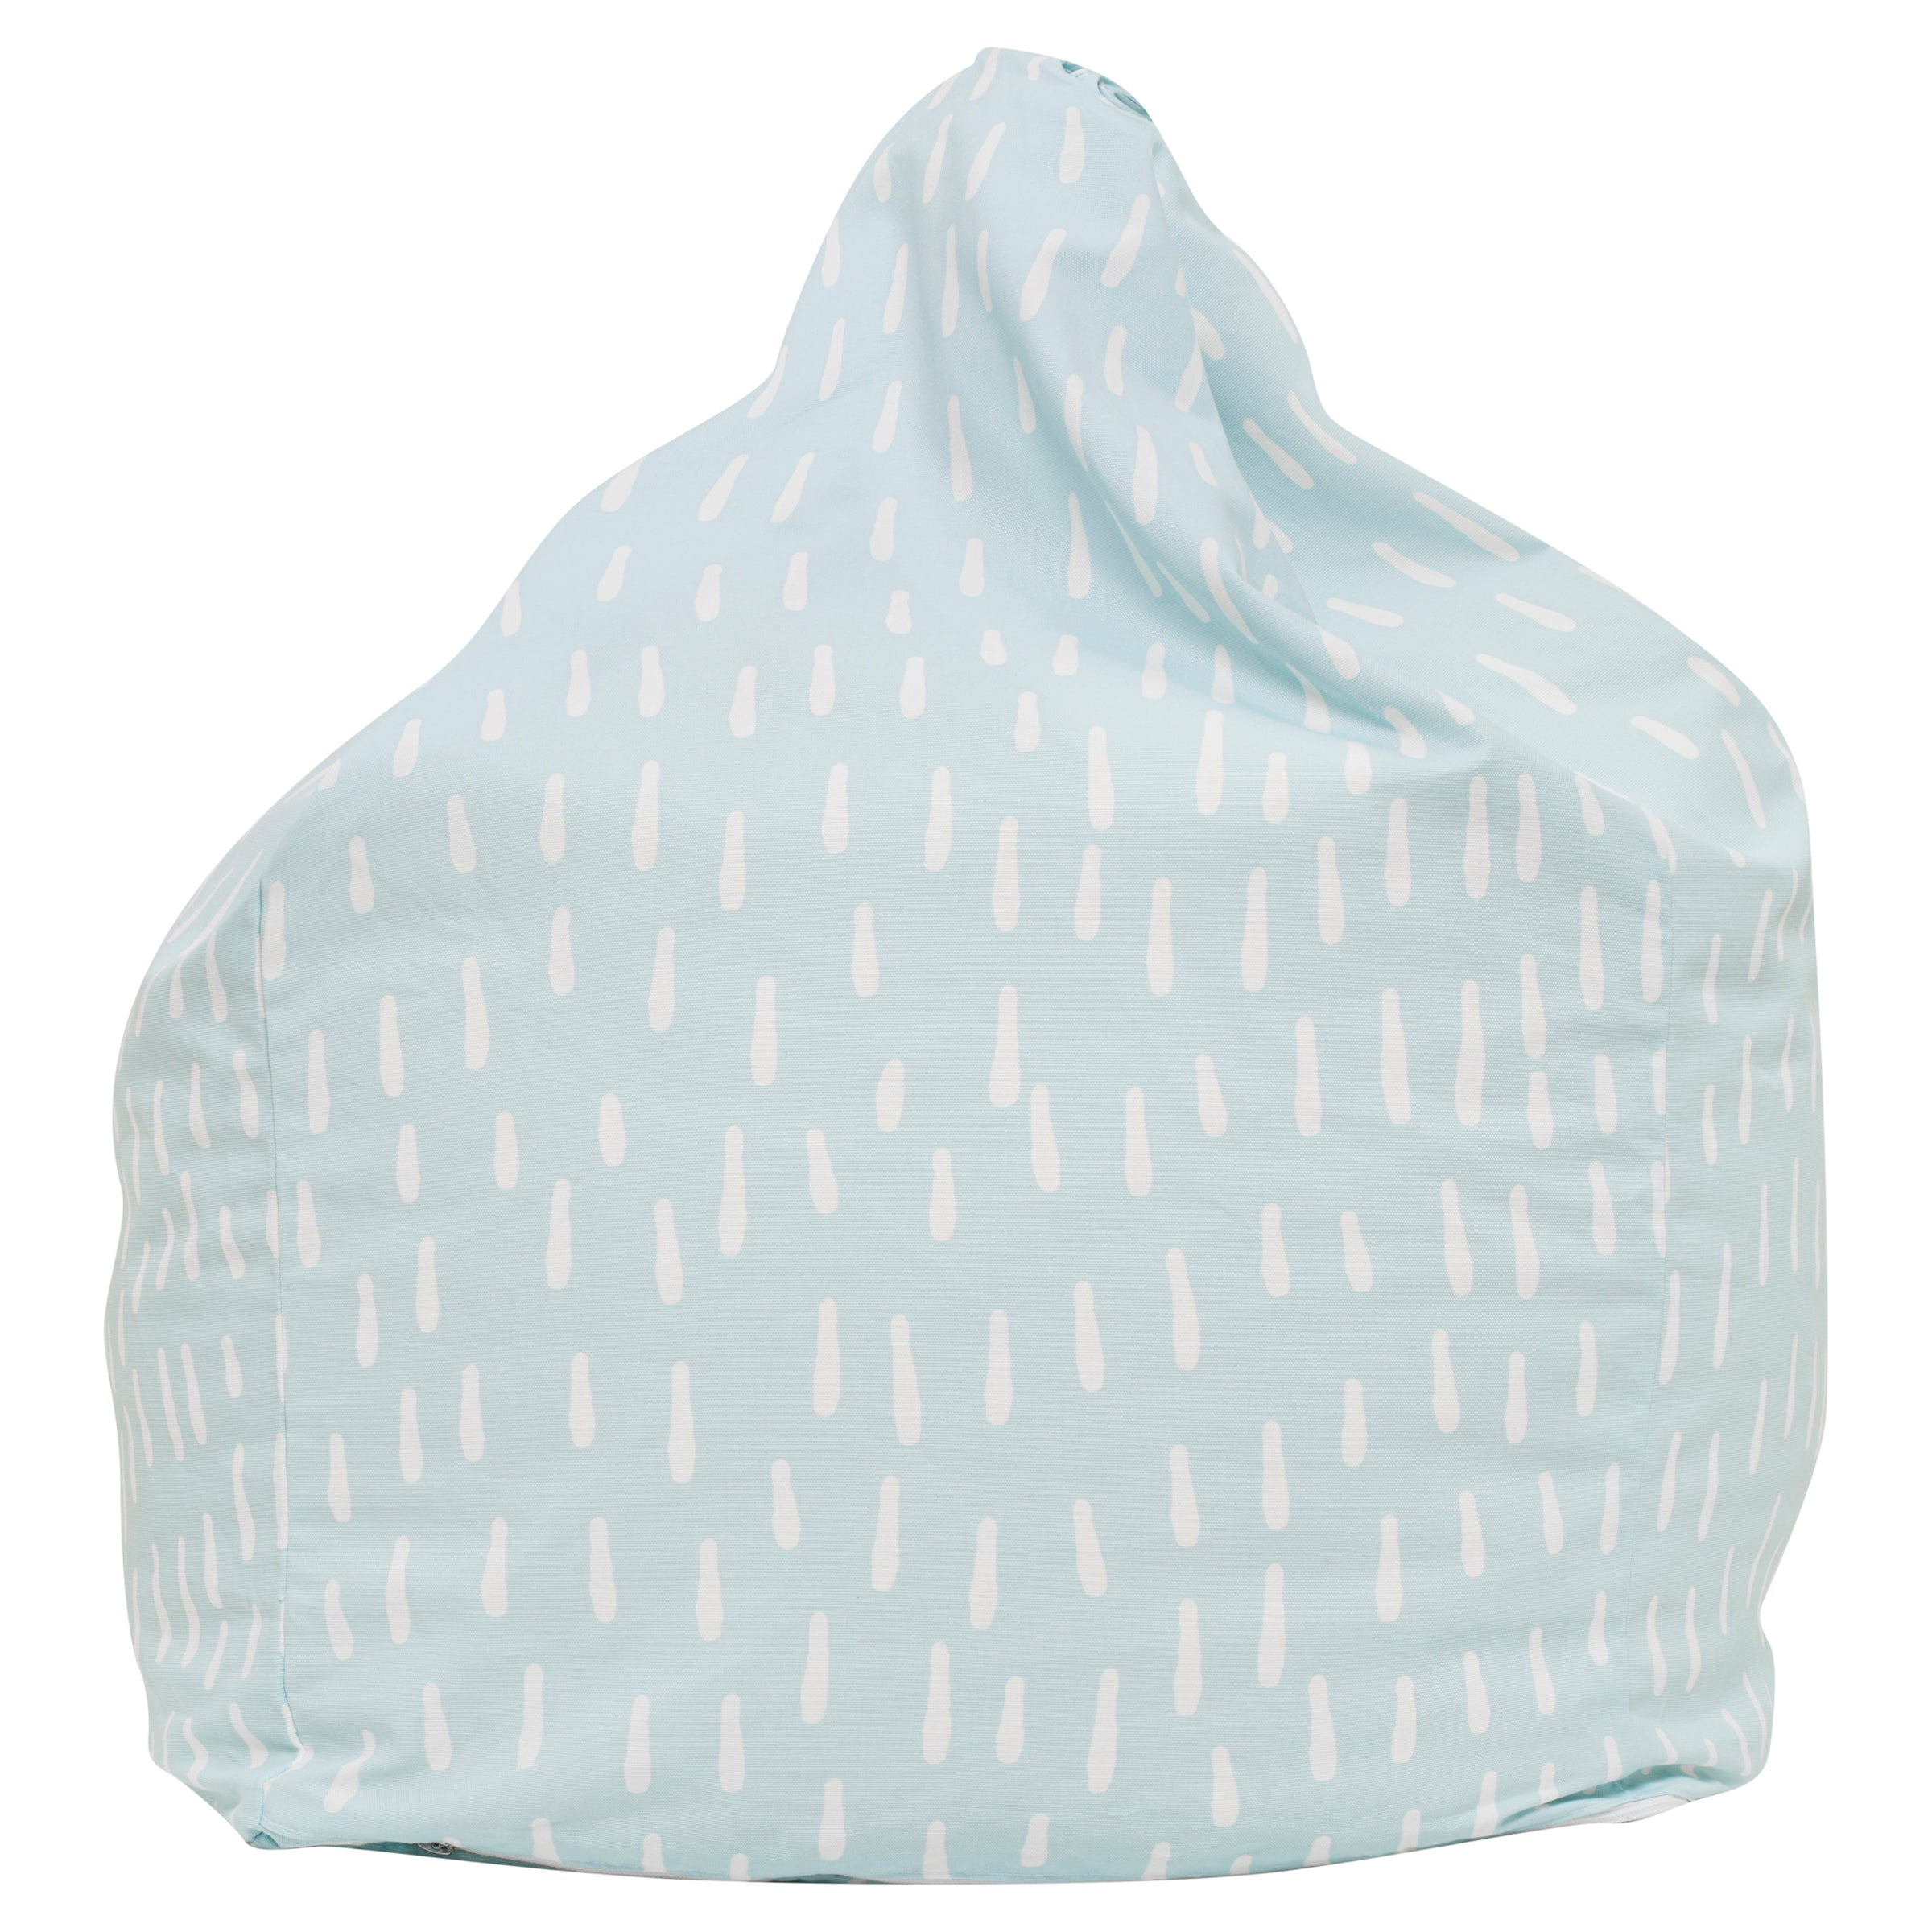 Raindrops Bean Bag - Aqua Blue